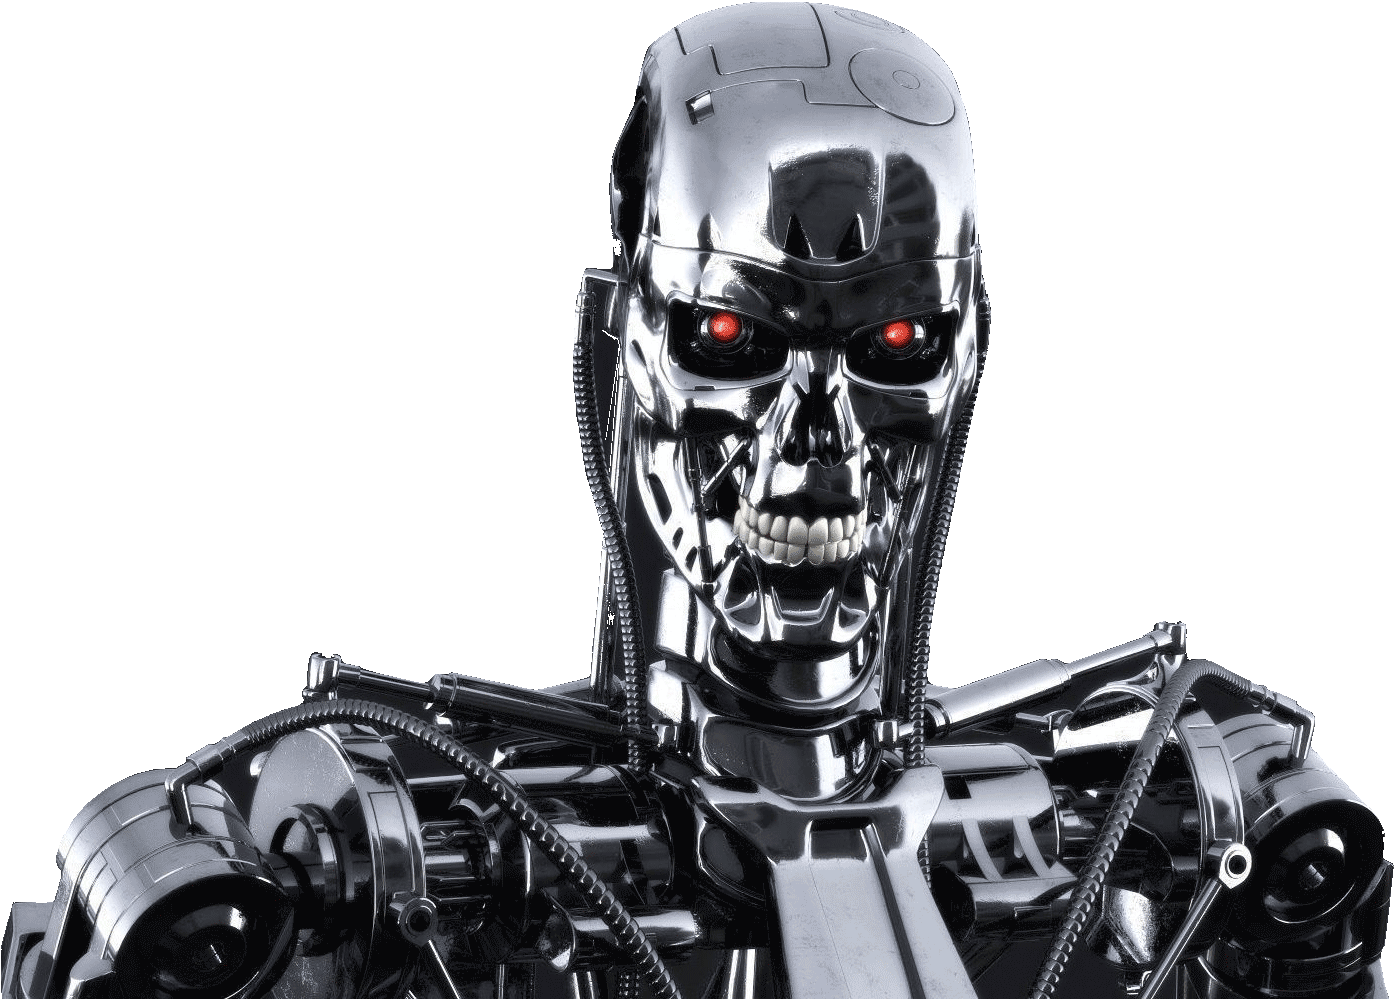 Terminator clipart effects clipart Terminator PNG Image - PurePNG | Free transparent CC0 PNG ... clipart